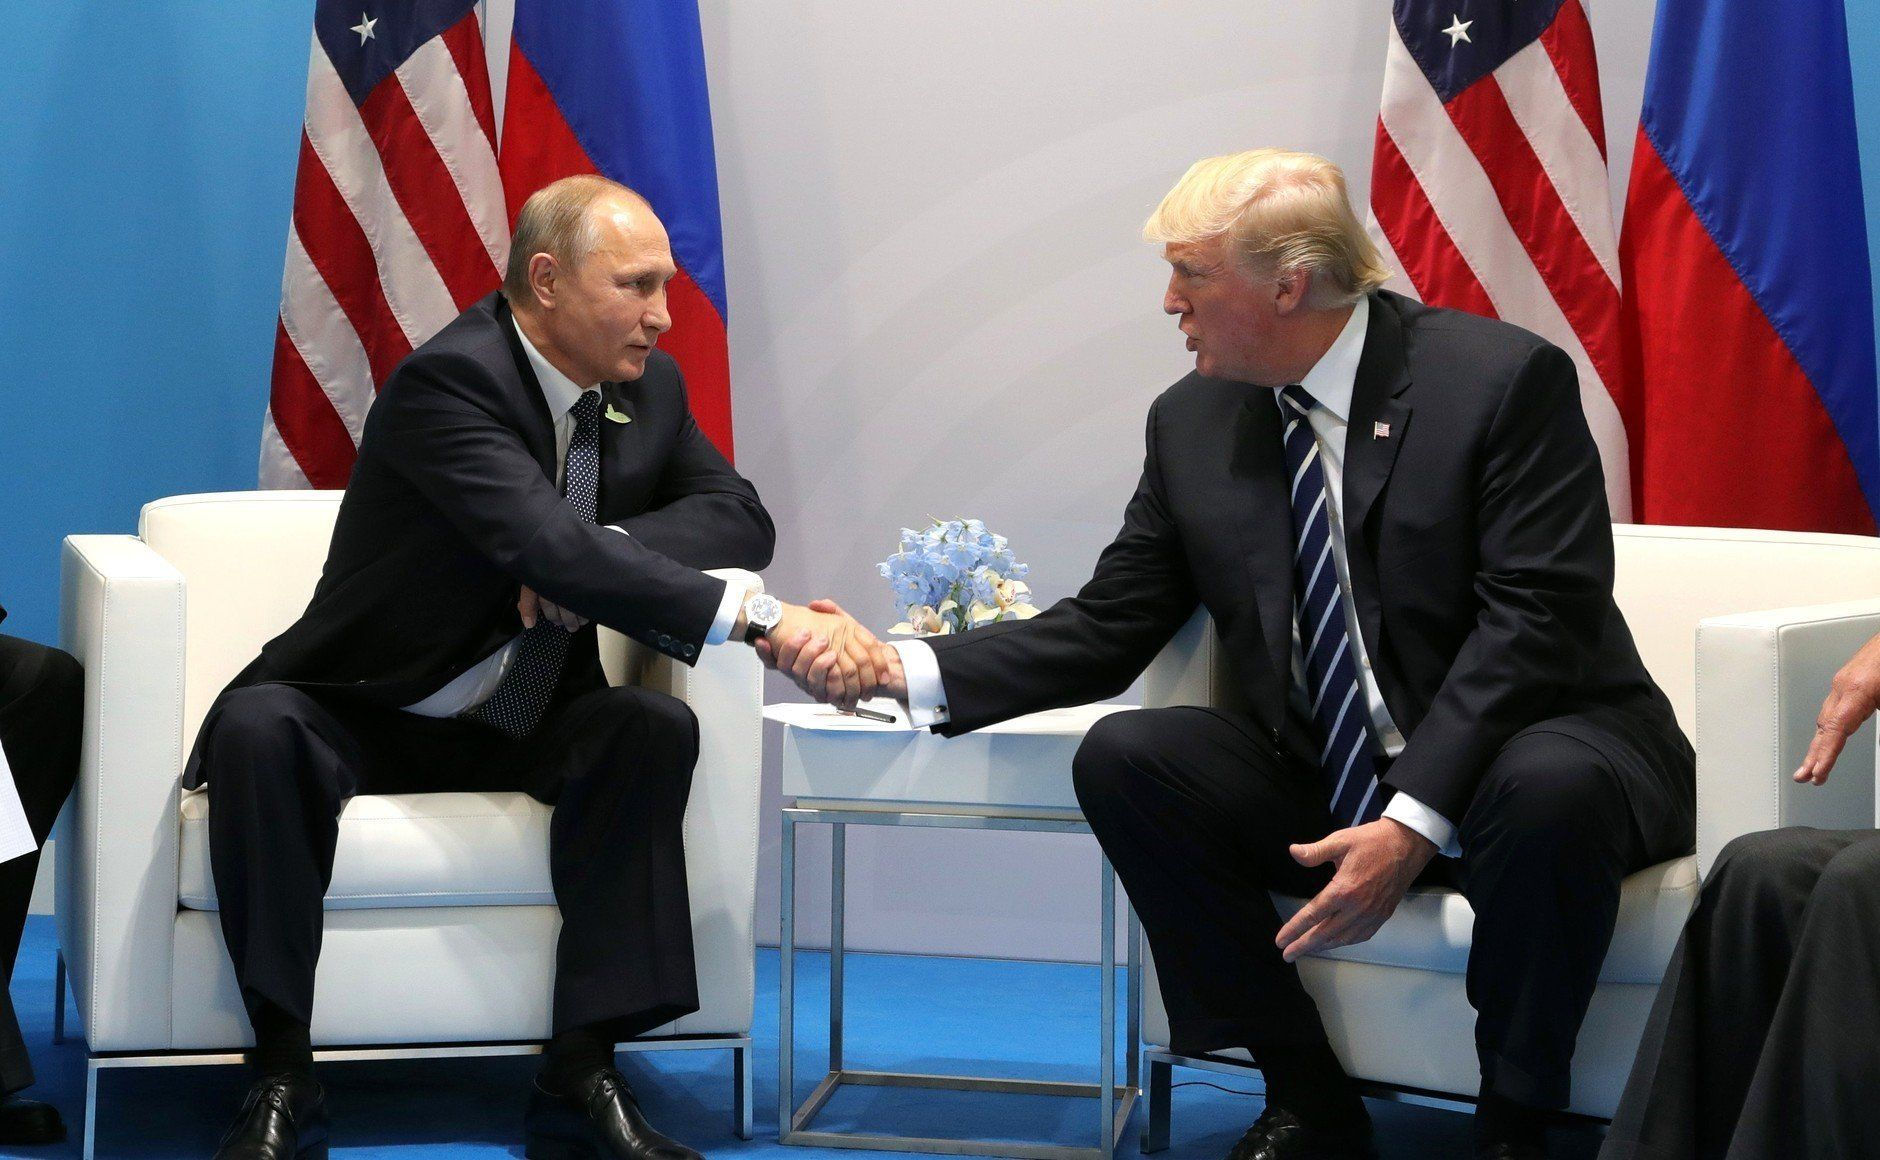 Kremlin agrees with Trump that bilateral ties 'at very risky low'